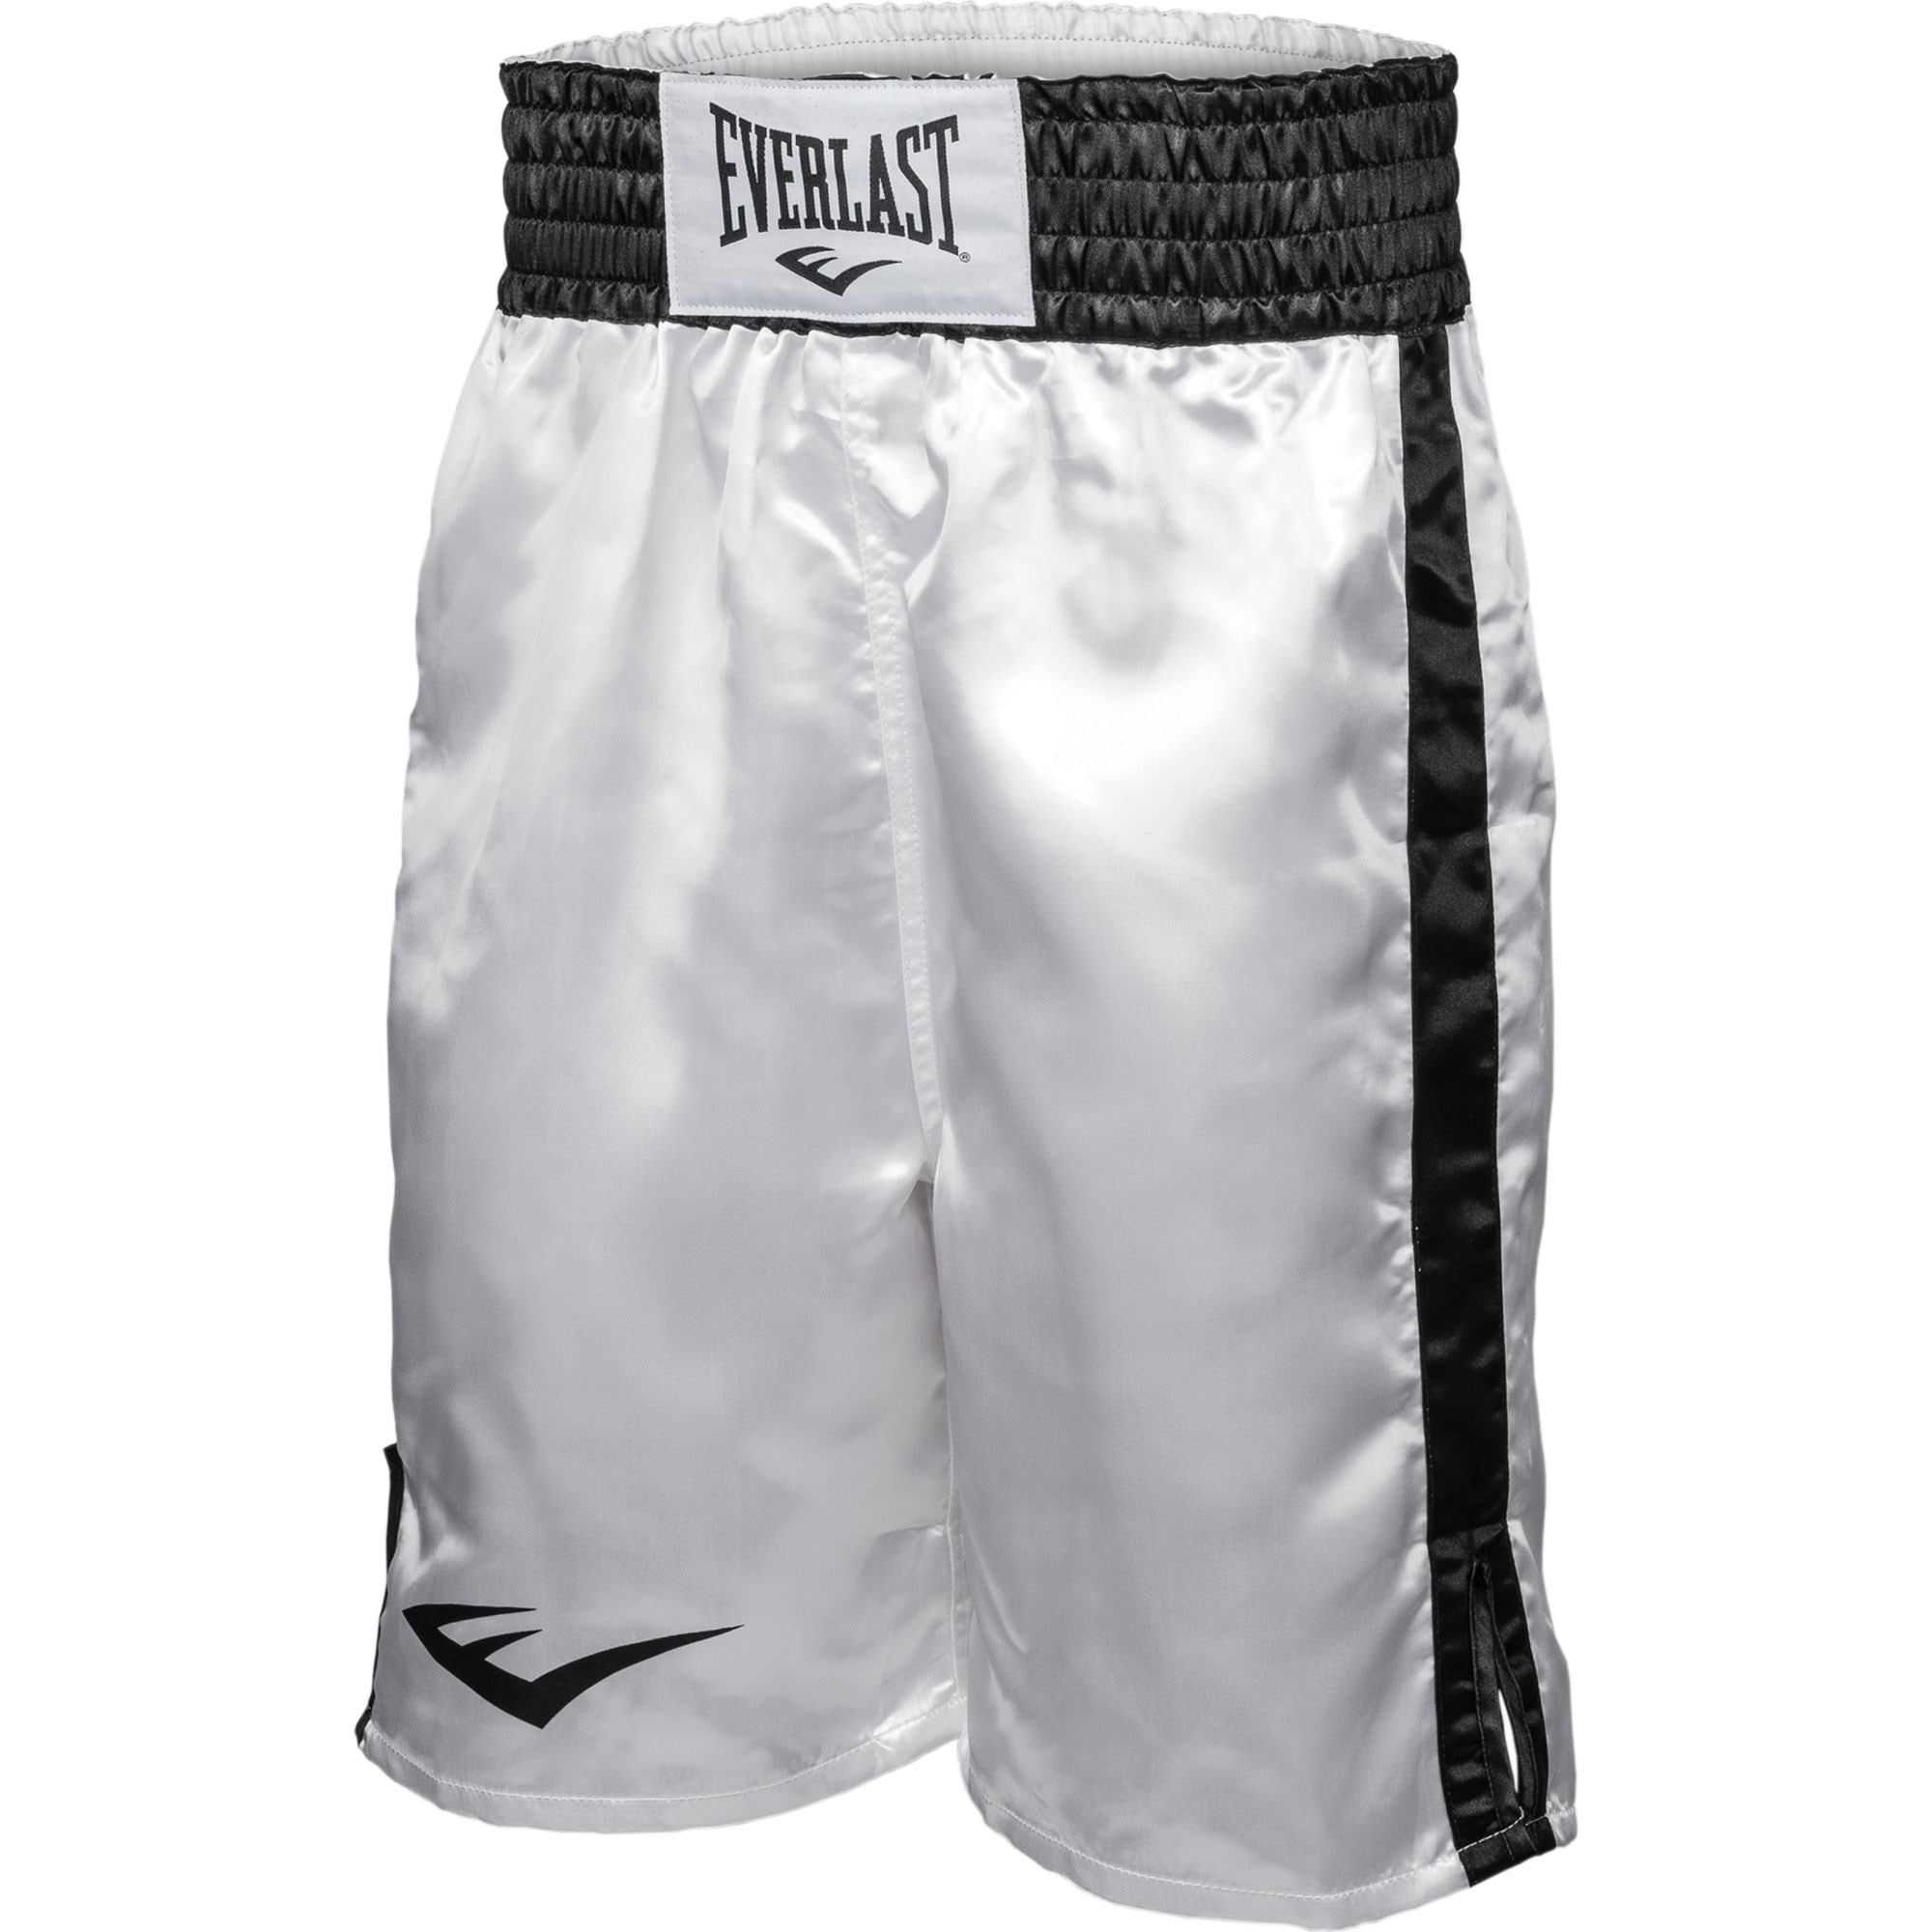 Everlast Boxing Trunks by Everlast Canada